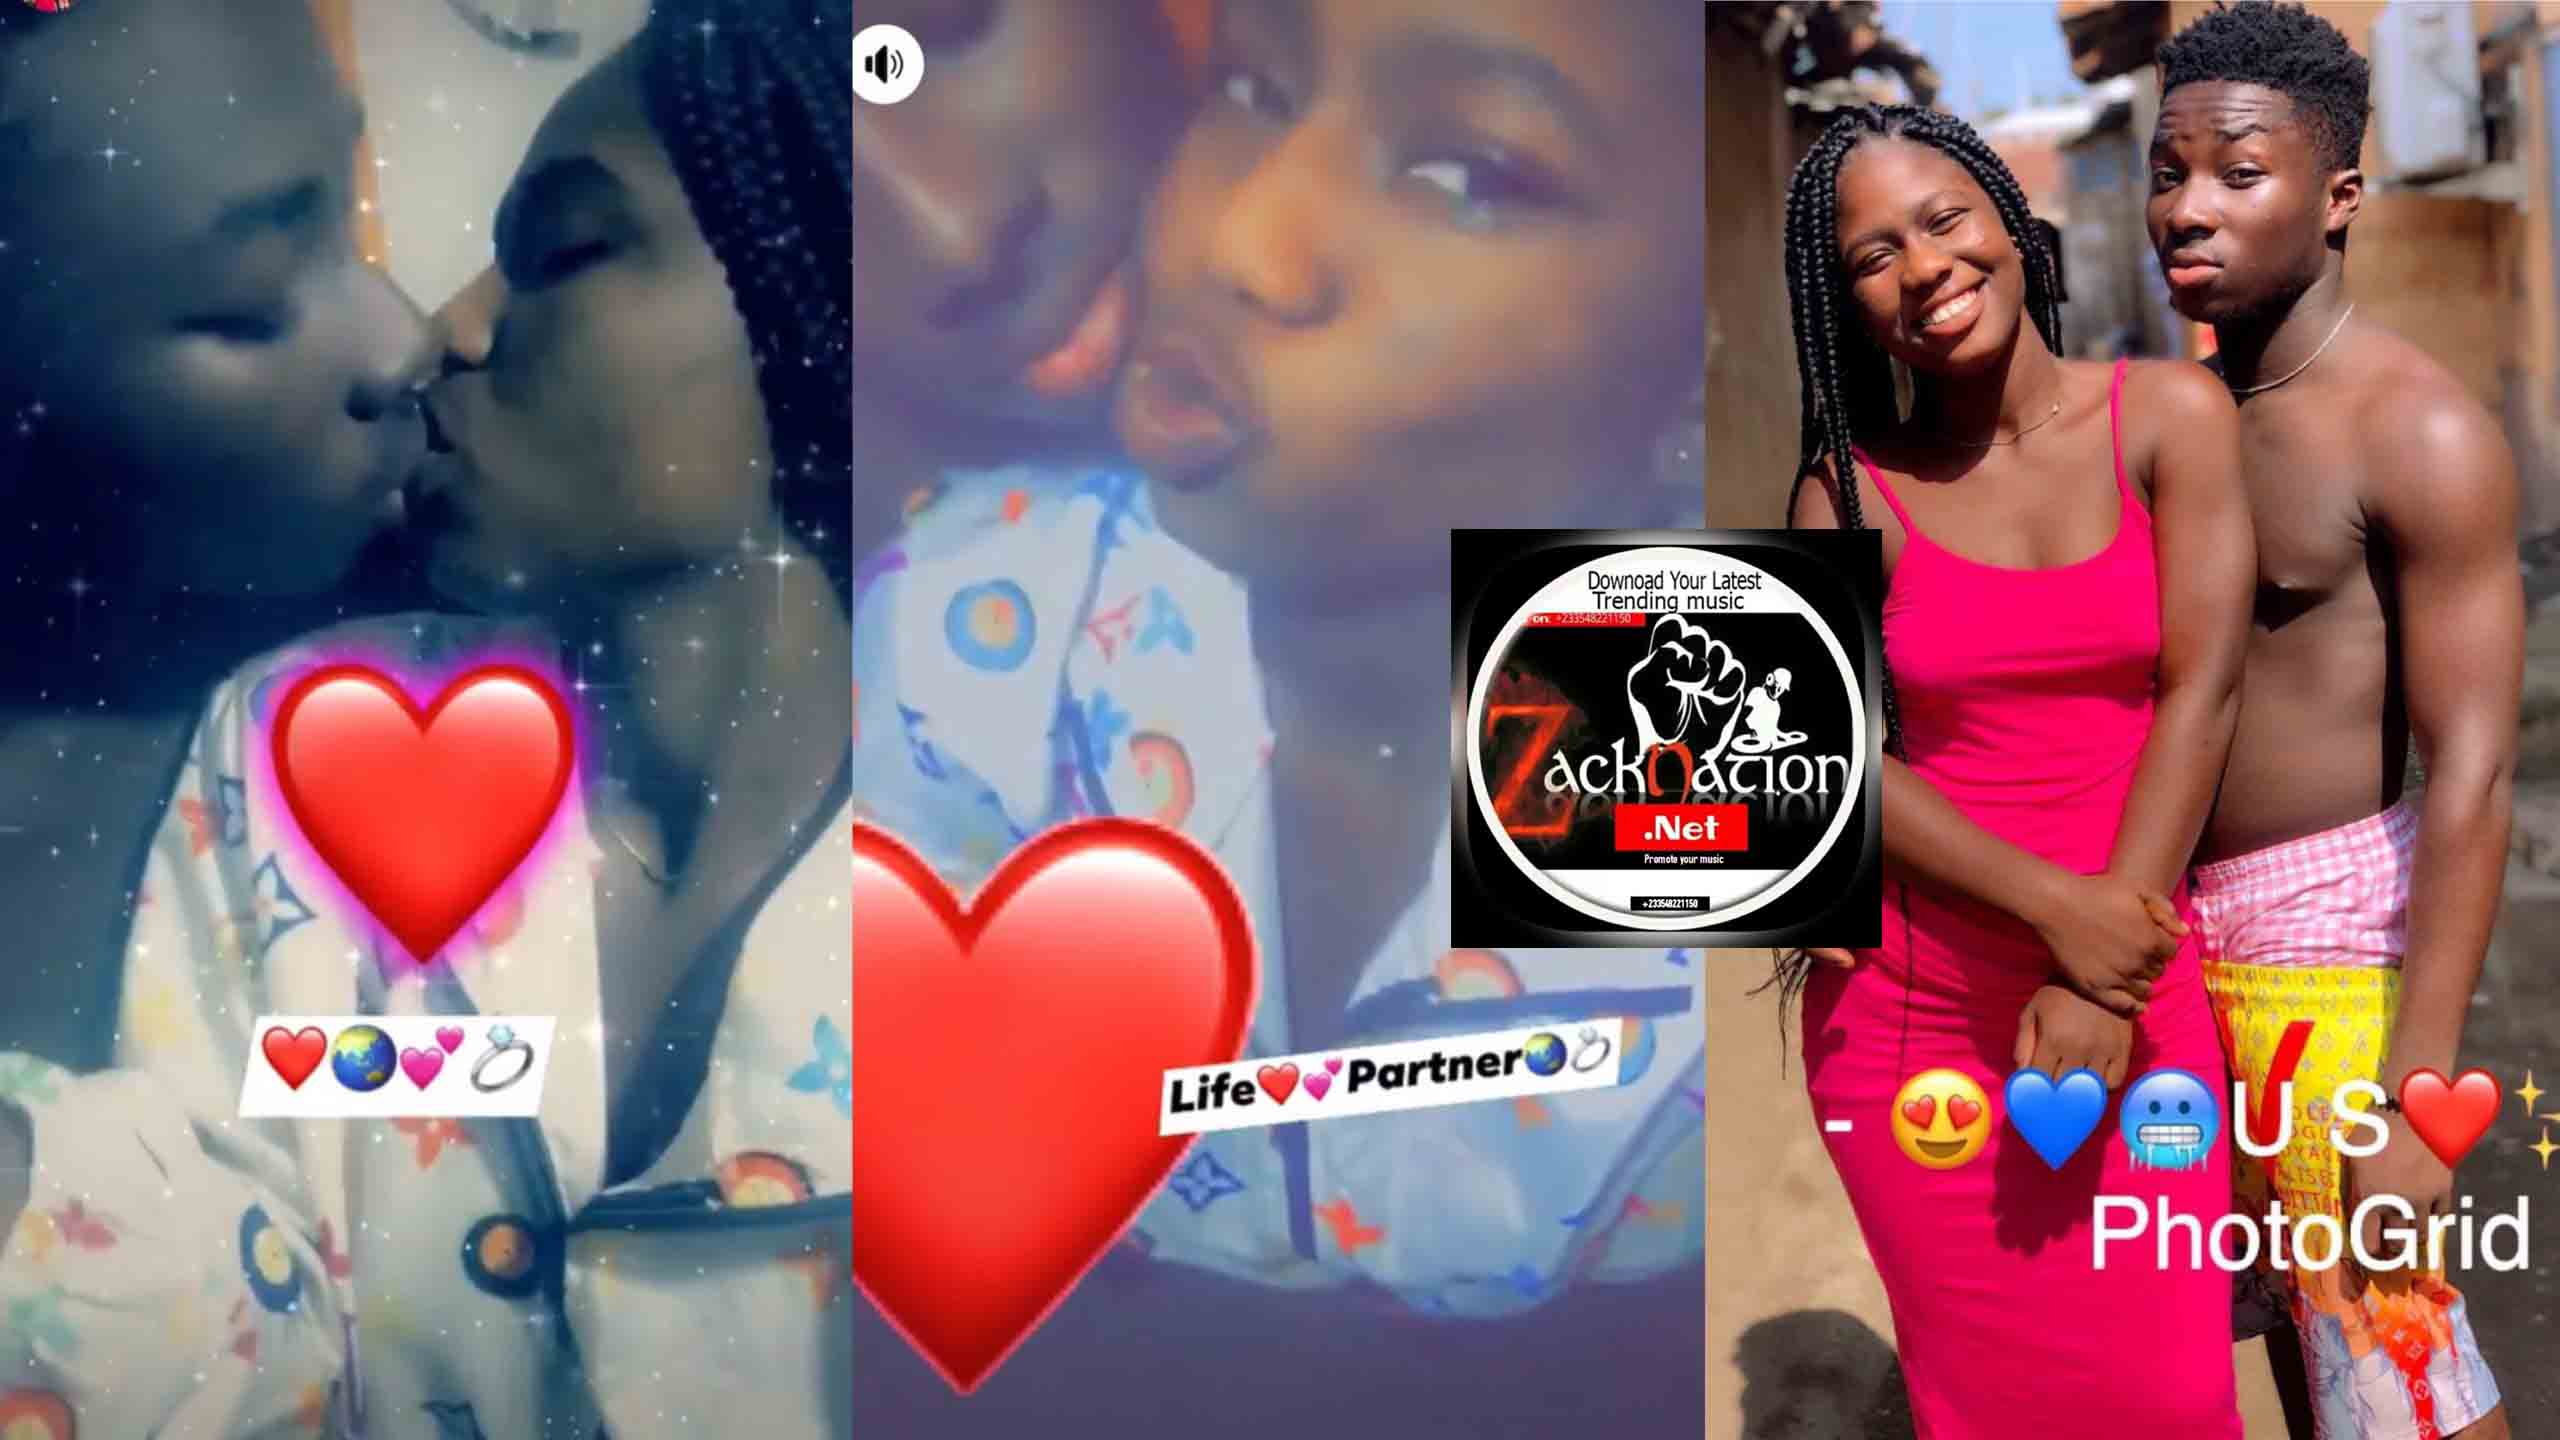 Here Is The Video Making This Facebook Love Birds Trend On Twitter (Watch)